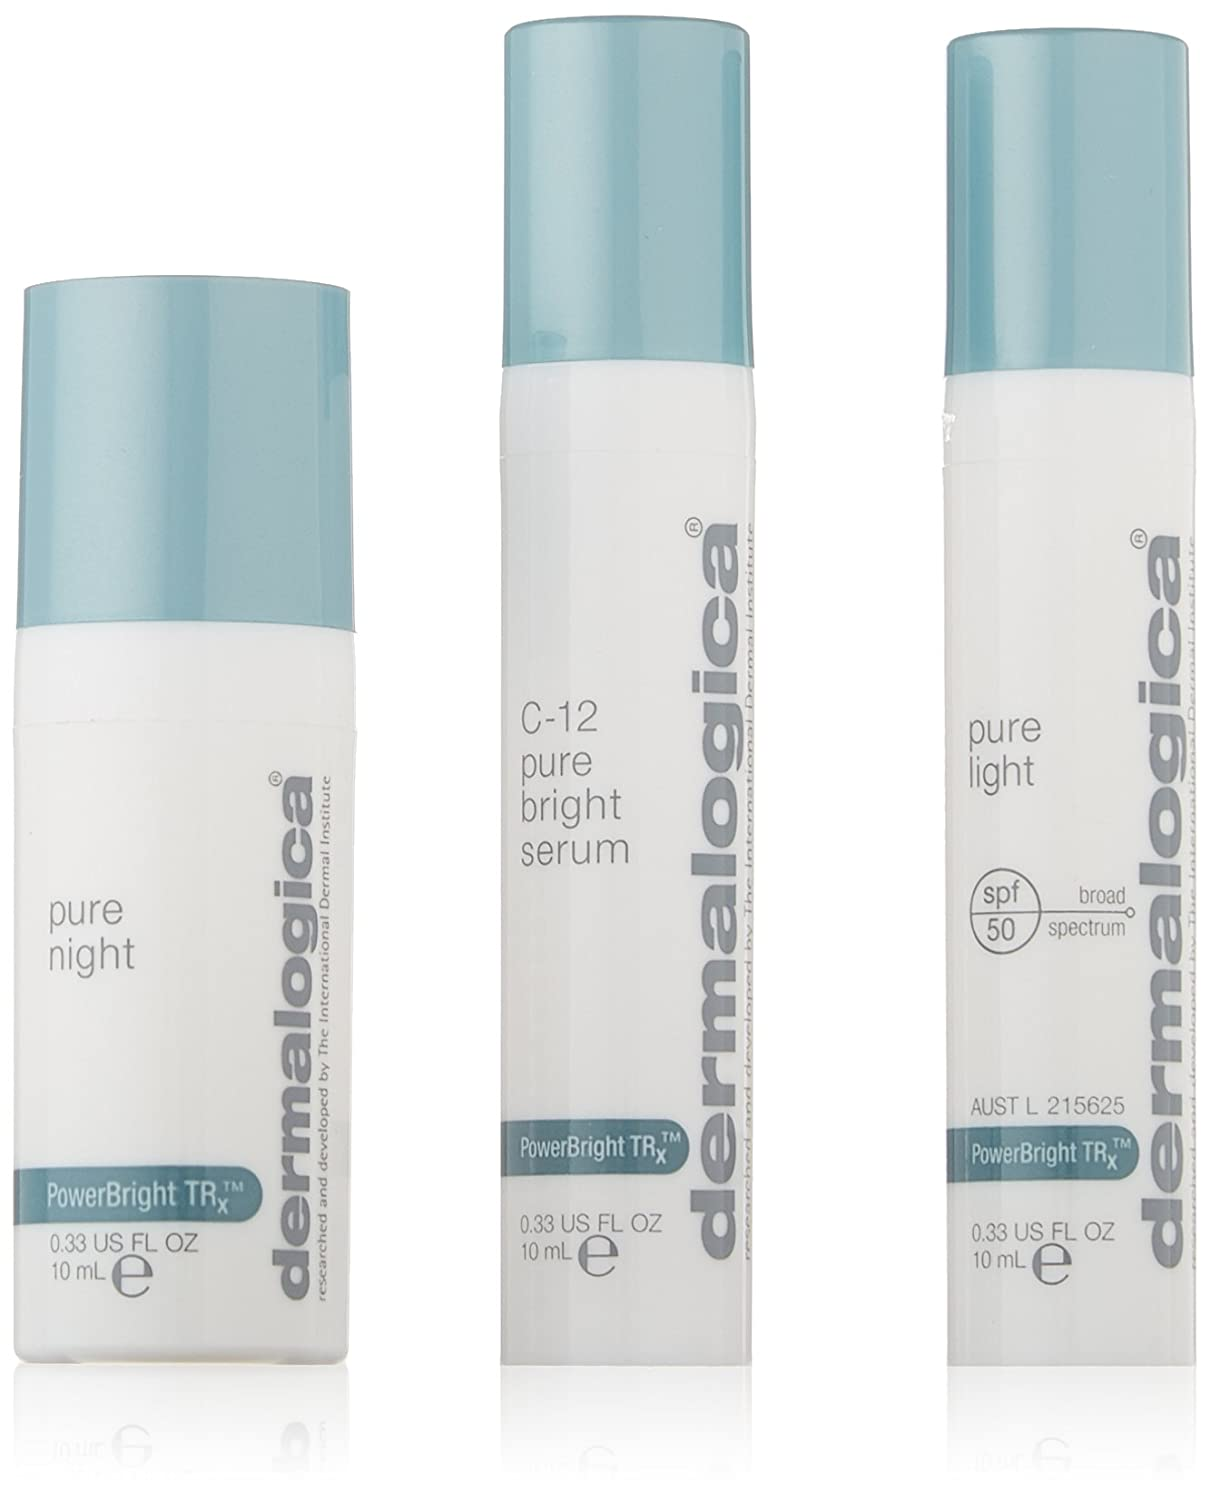 Dermalogica Powerbright TRX Treatment Kit AB-73243